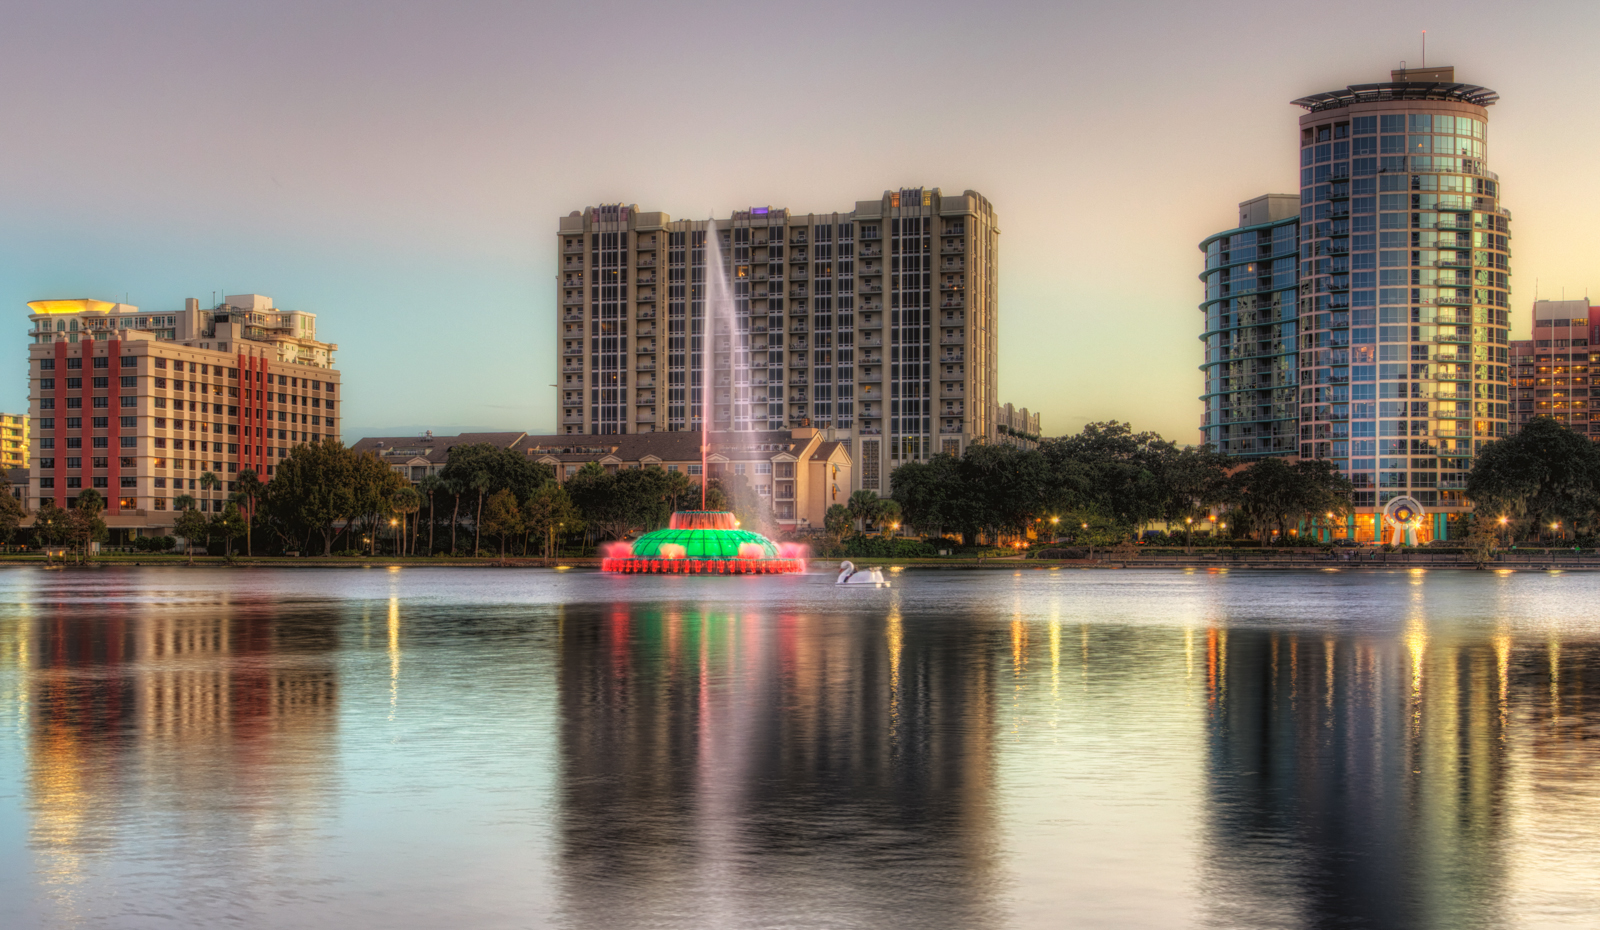 Lake Eola Fountain and Condos